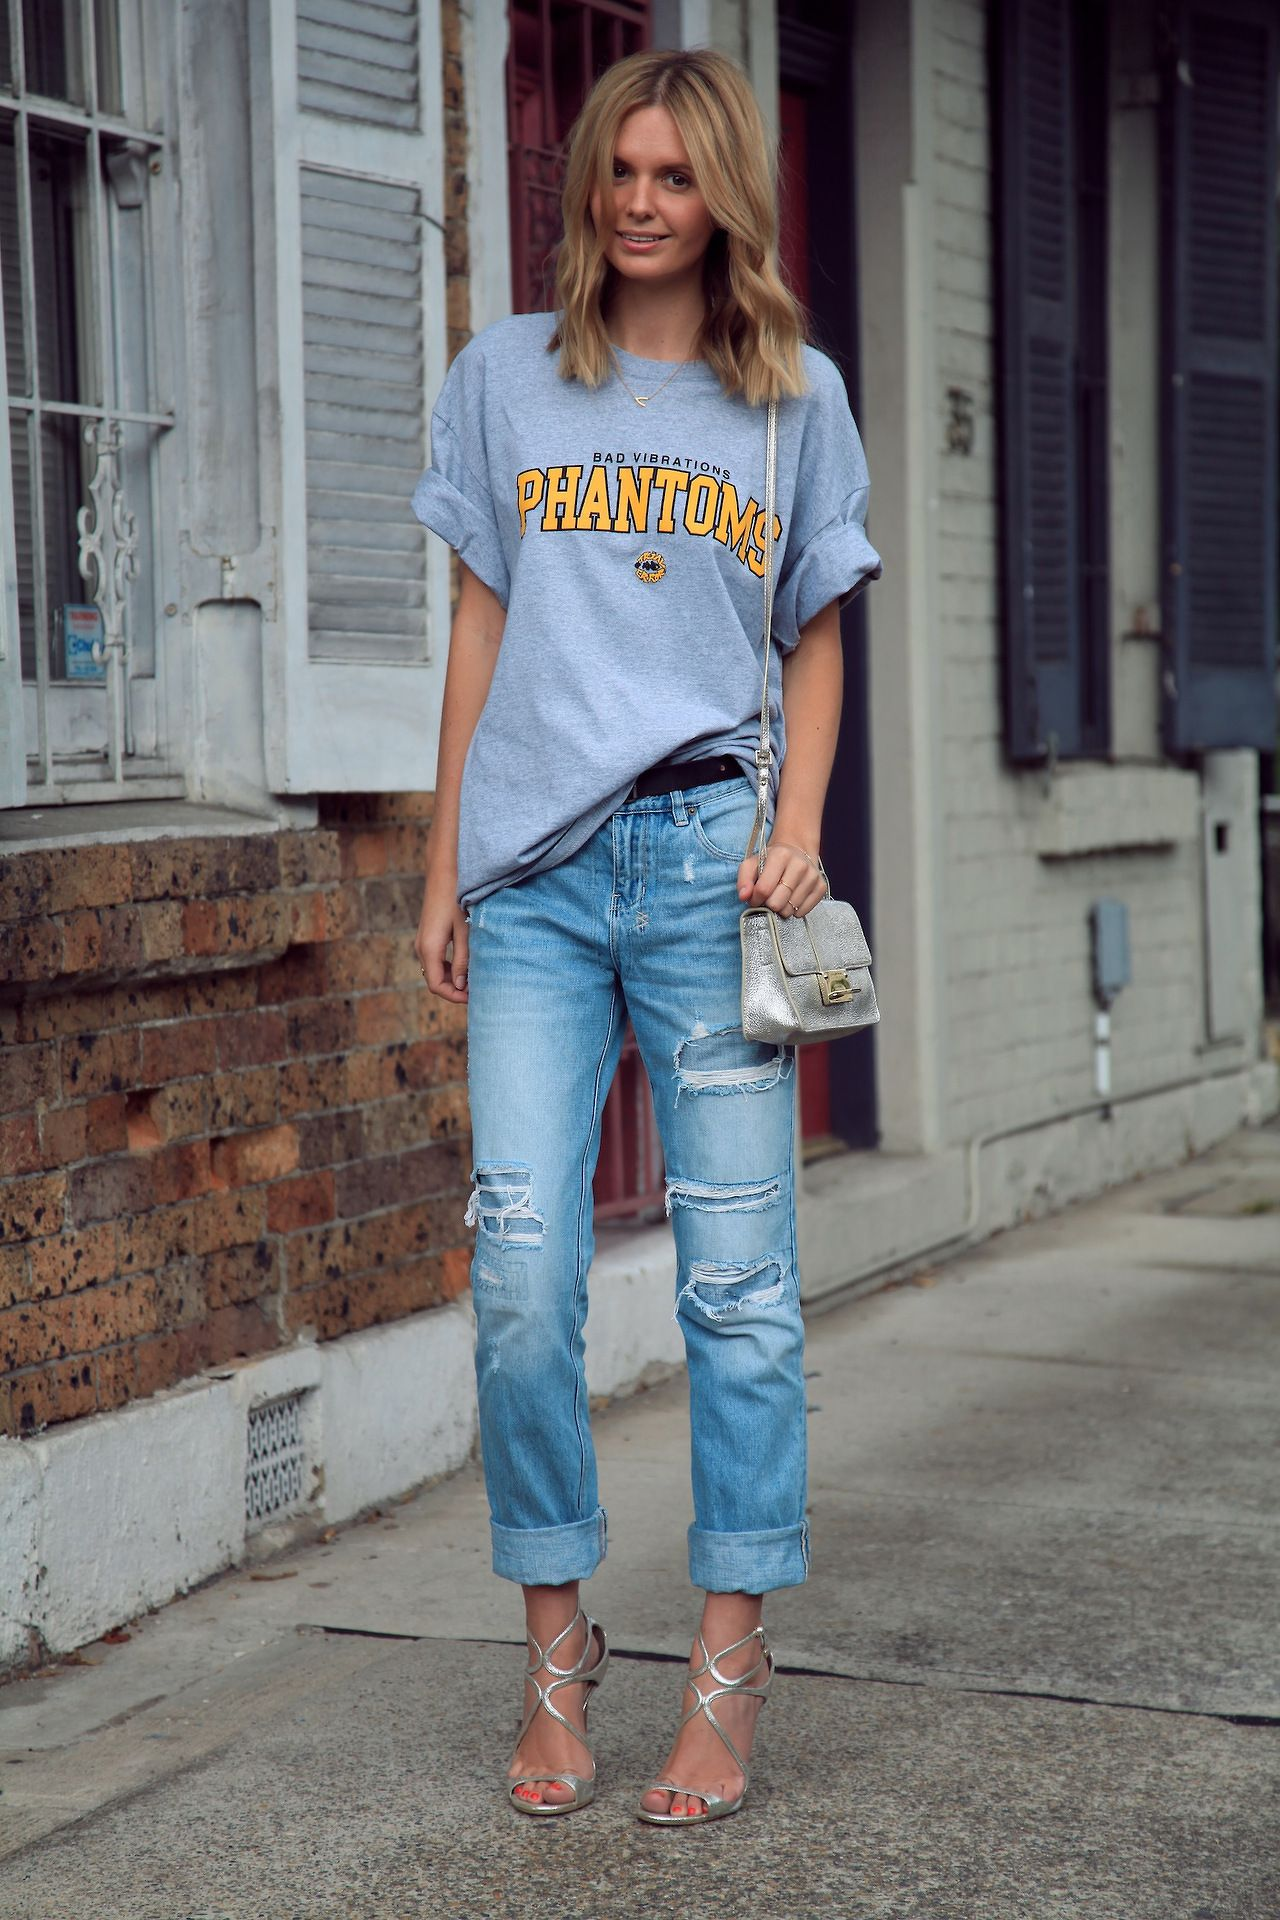 oversized tee, distressed jeans and heels. From celebinspire.tumblr.com  WANT THOSE JEANS!! LOVE EM!! adb9d9f12a